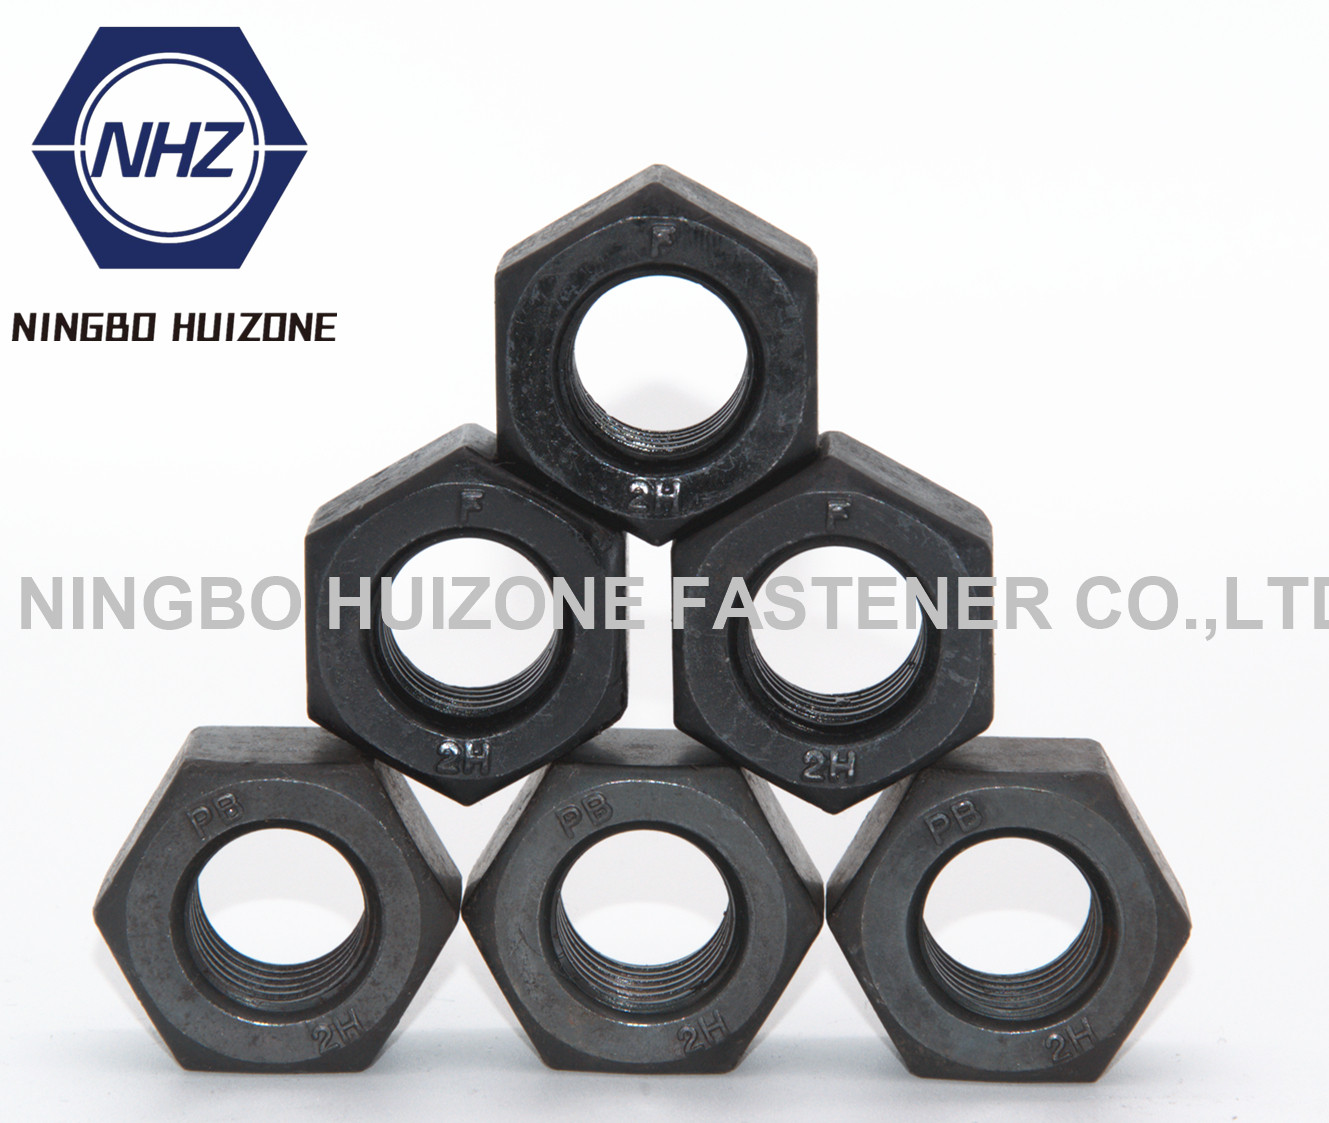 Heavy Hex Nuts ASTM A194/194M Grade 2H/2HM/4/7/7M/8/8M